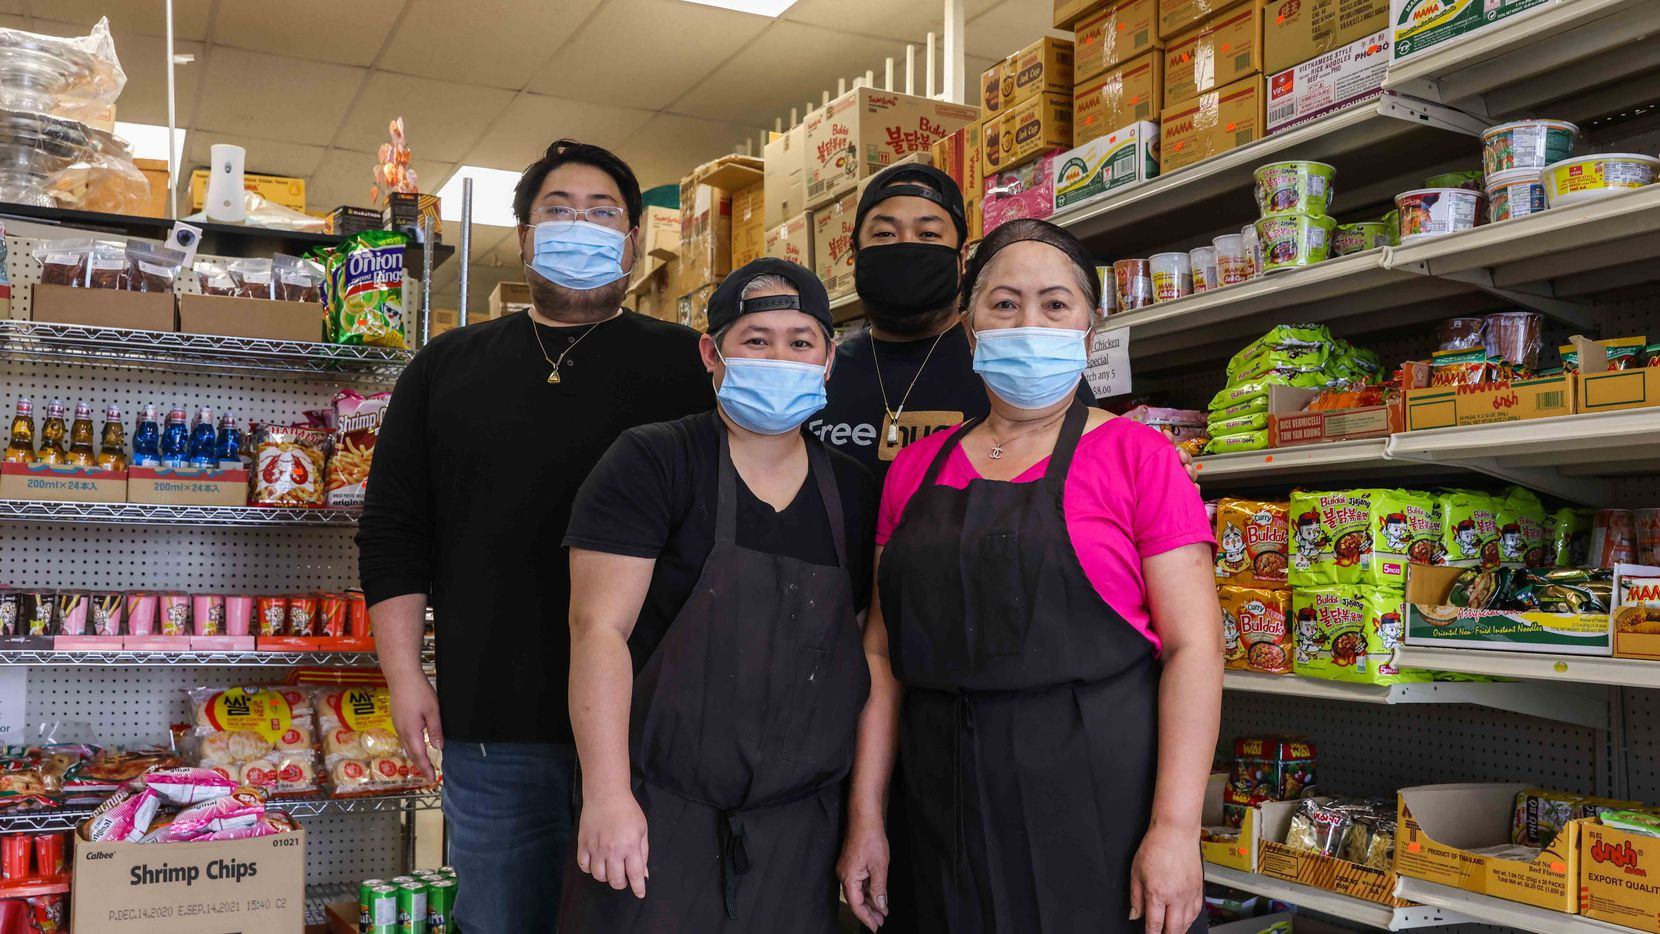 From left, Phillip Southammavong, Peck Somphavanh, Alen Southammavong and Ly Southammavong pose together at Ly Food Market in Oak Cliff on Tuesday, April 6, 2021.